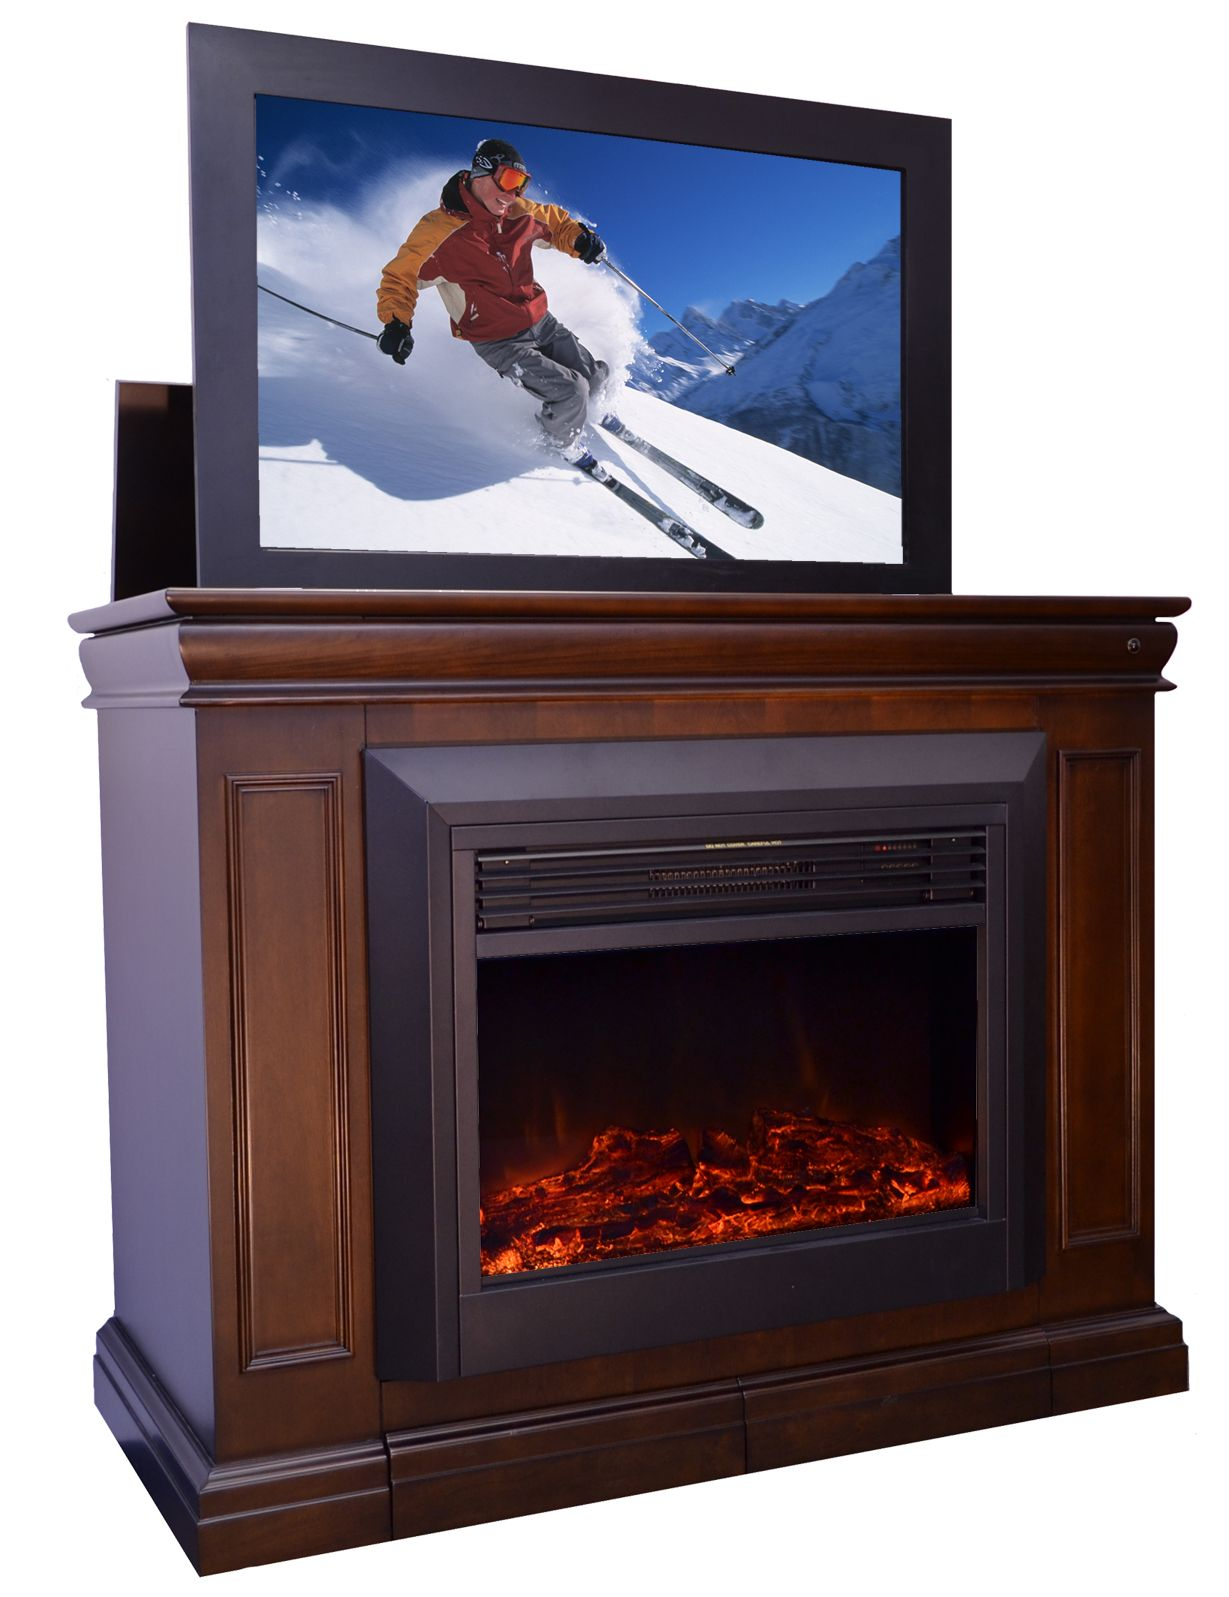 tv large with signature stand ashley kraleene products item insert cabinet number design by fireplace